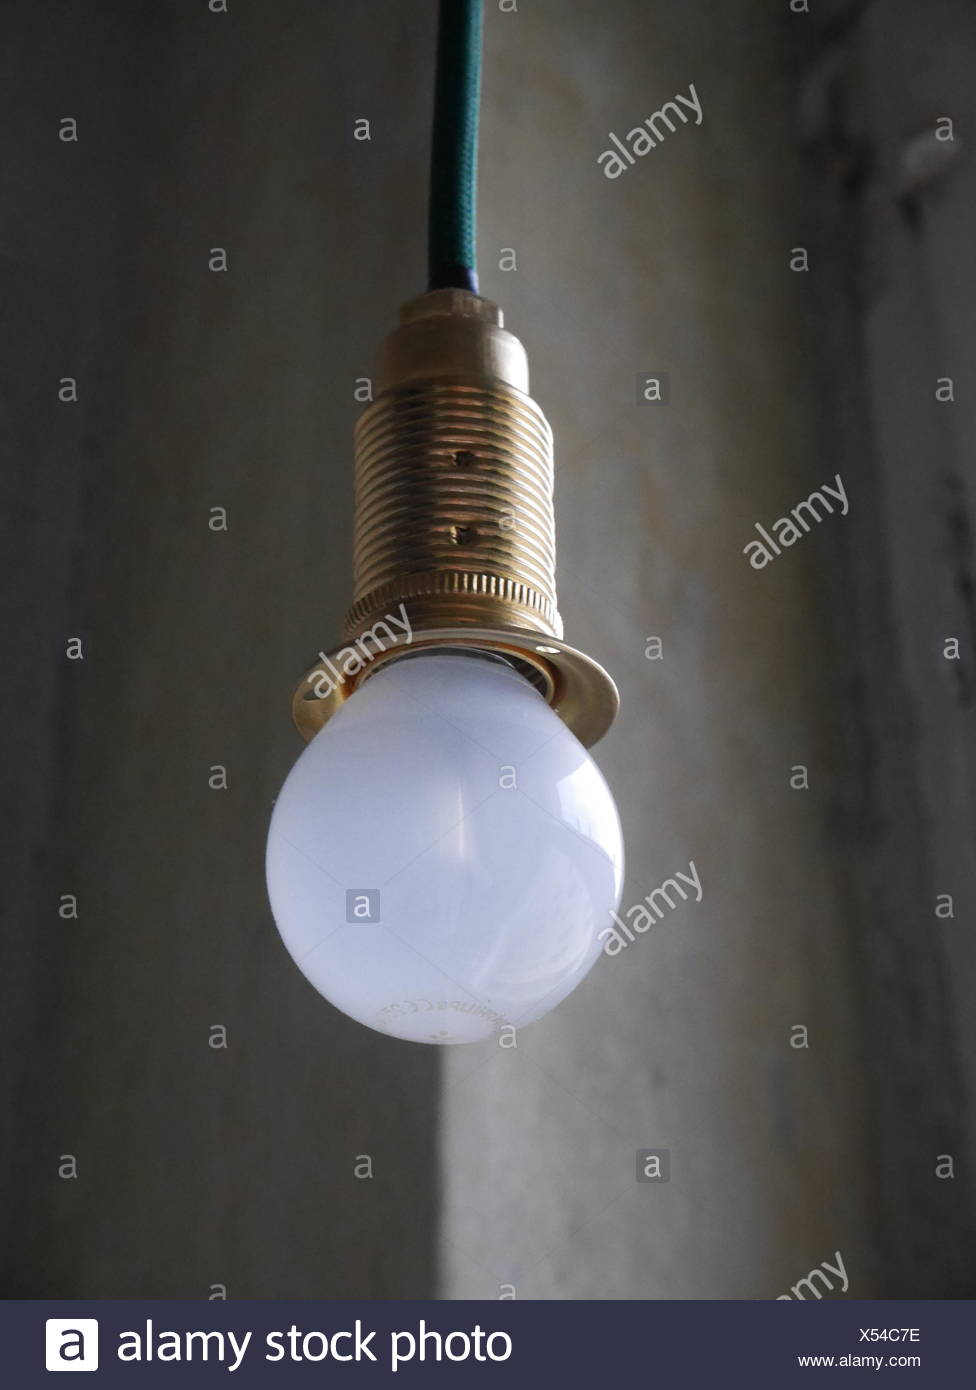 White light bulb hanging from ceiling ceiling stock photos white low angle view of white light bulb hanging from ceiling stock image aloadofball Gallery